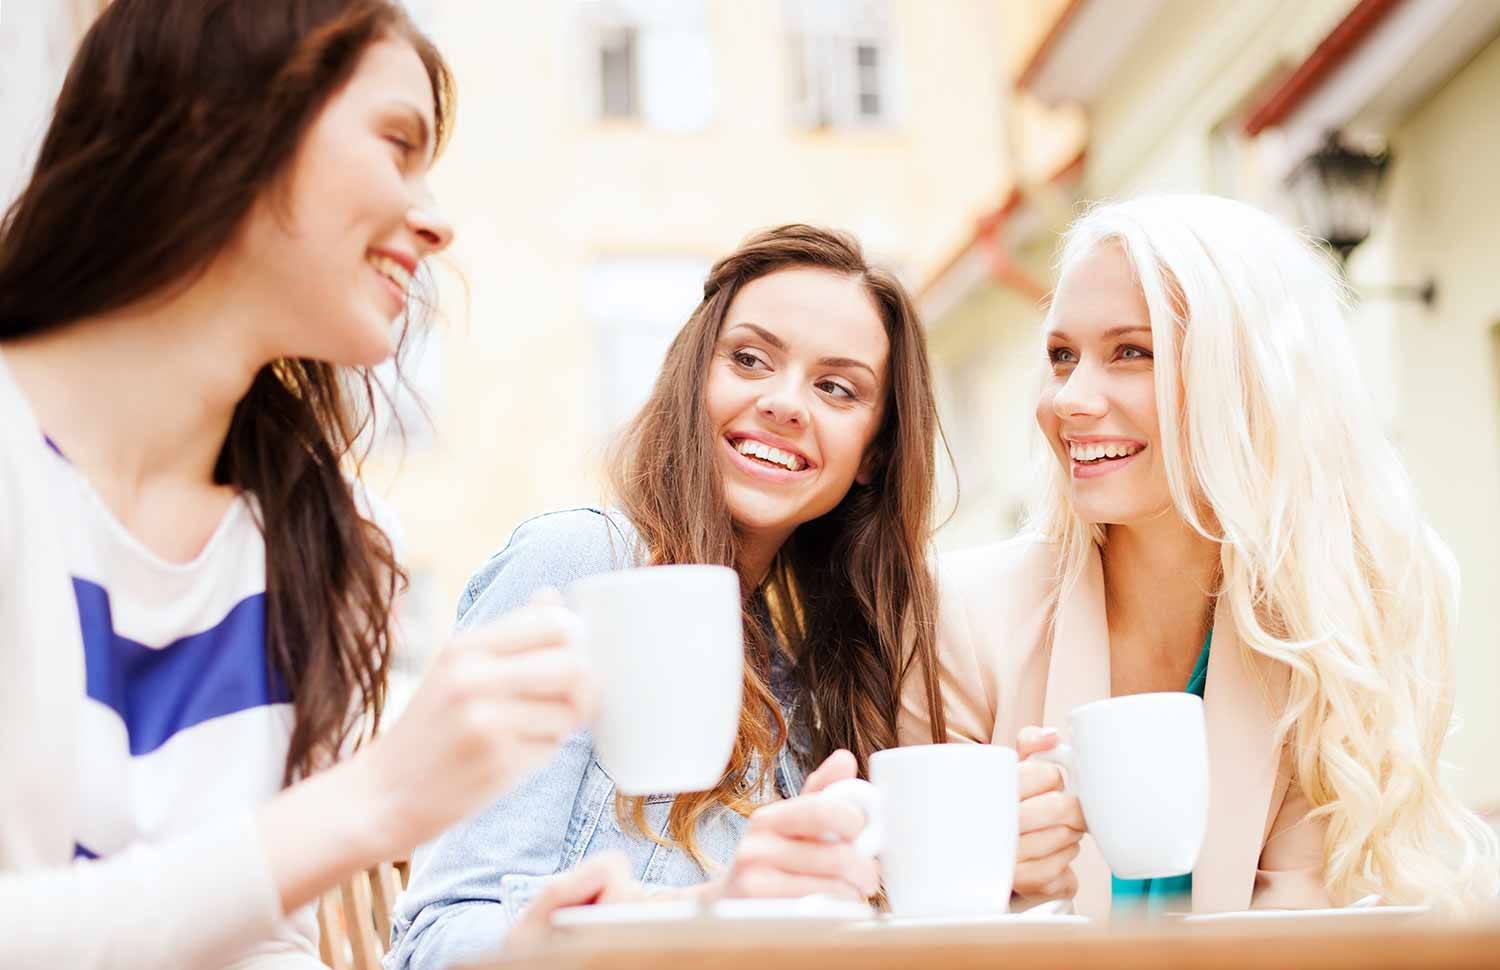 Brisbane-Student-Apartments_Students-Coffee-Girls-Interaction